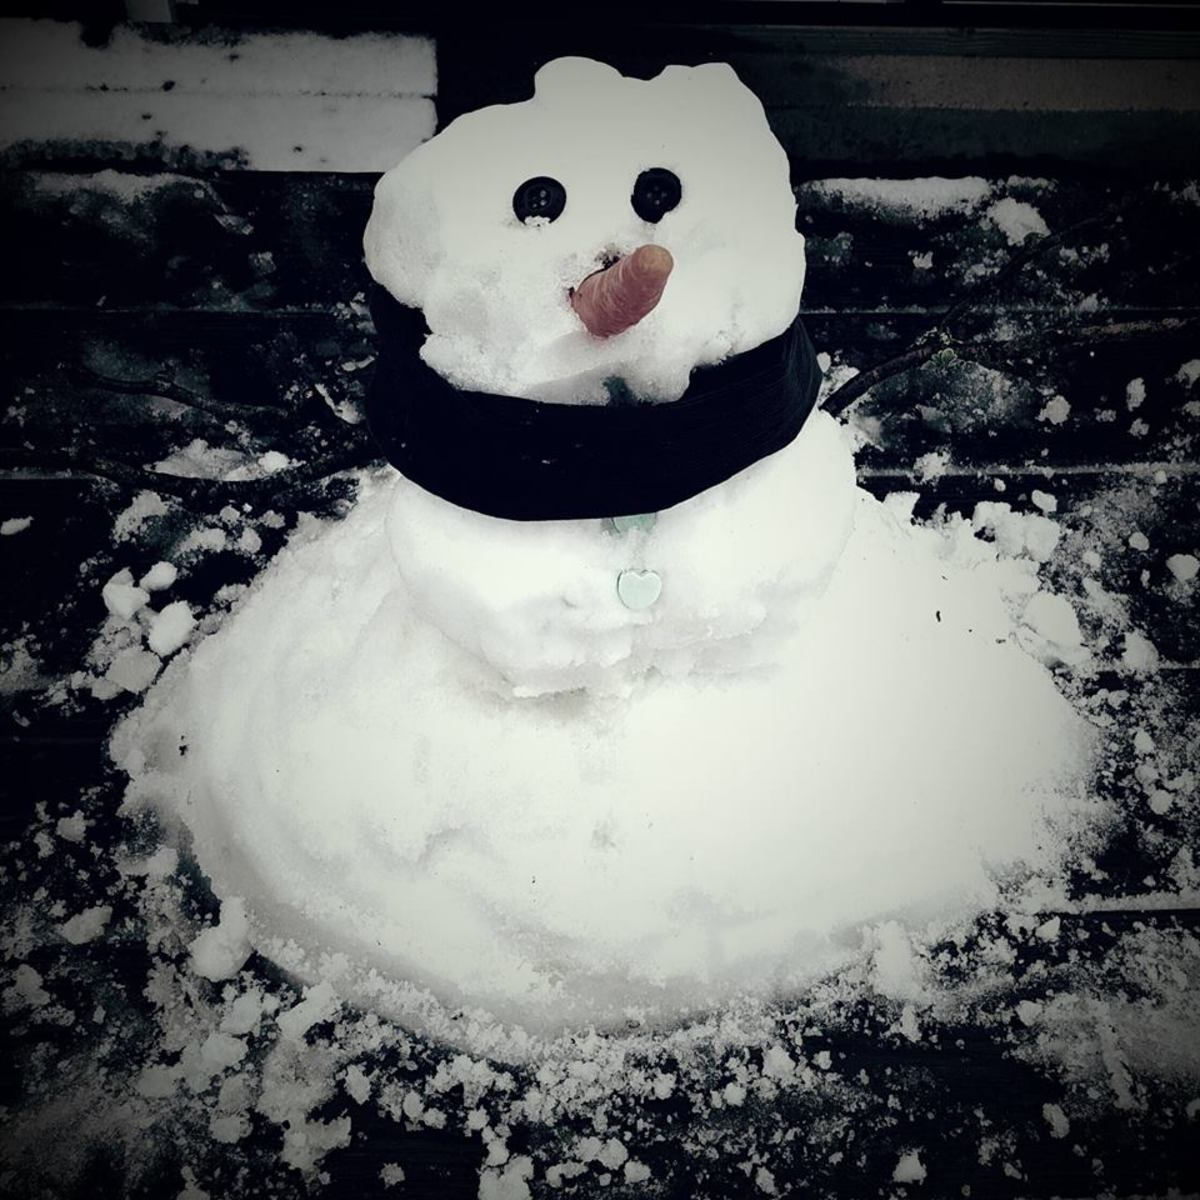 A little snowman my son and I made last winter.